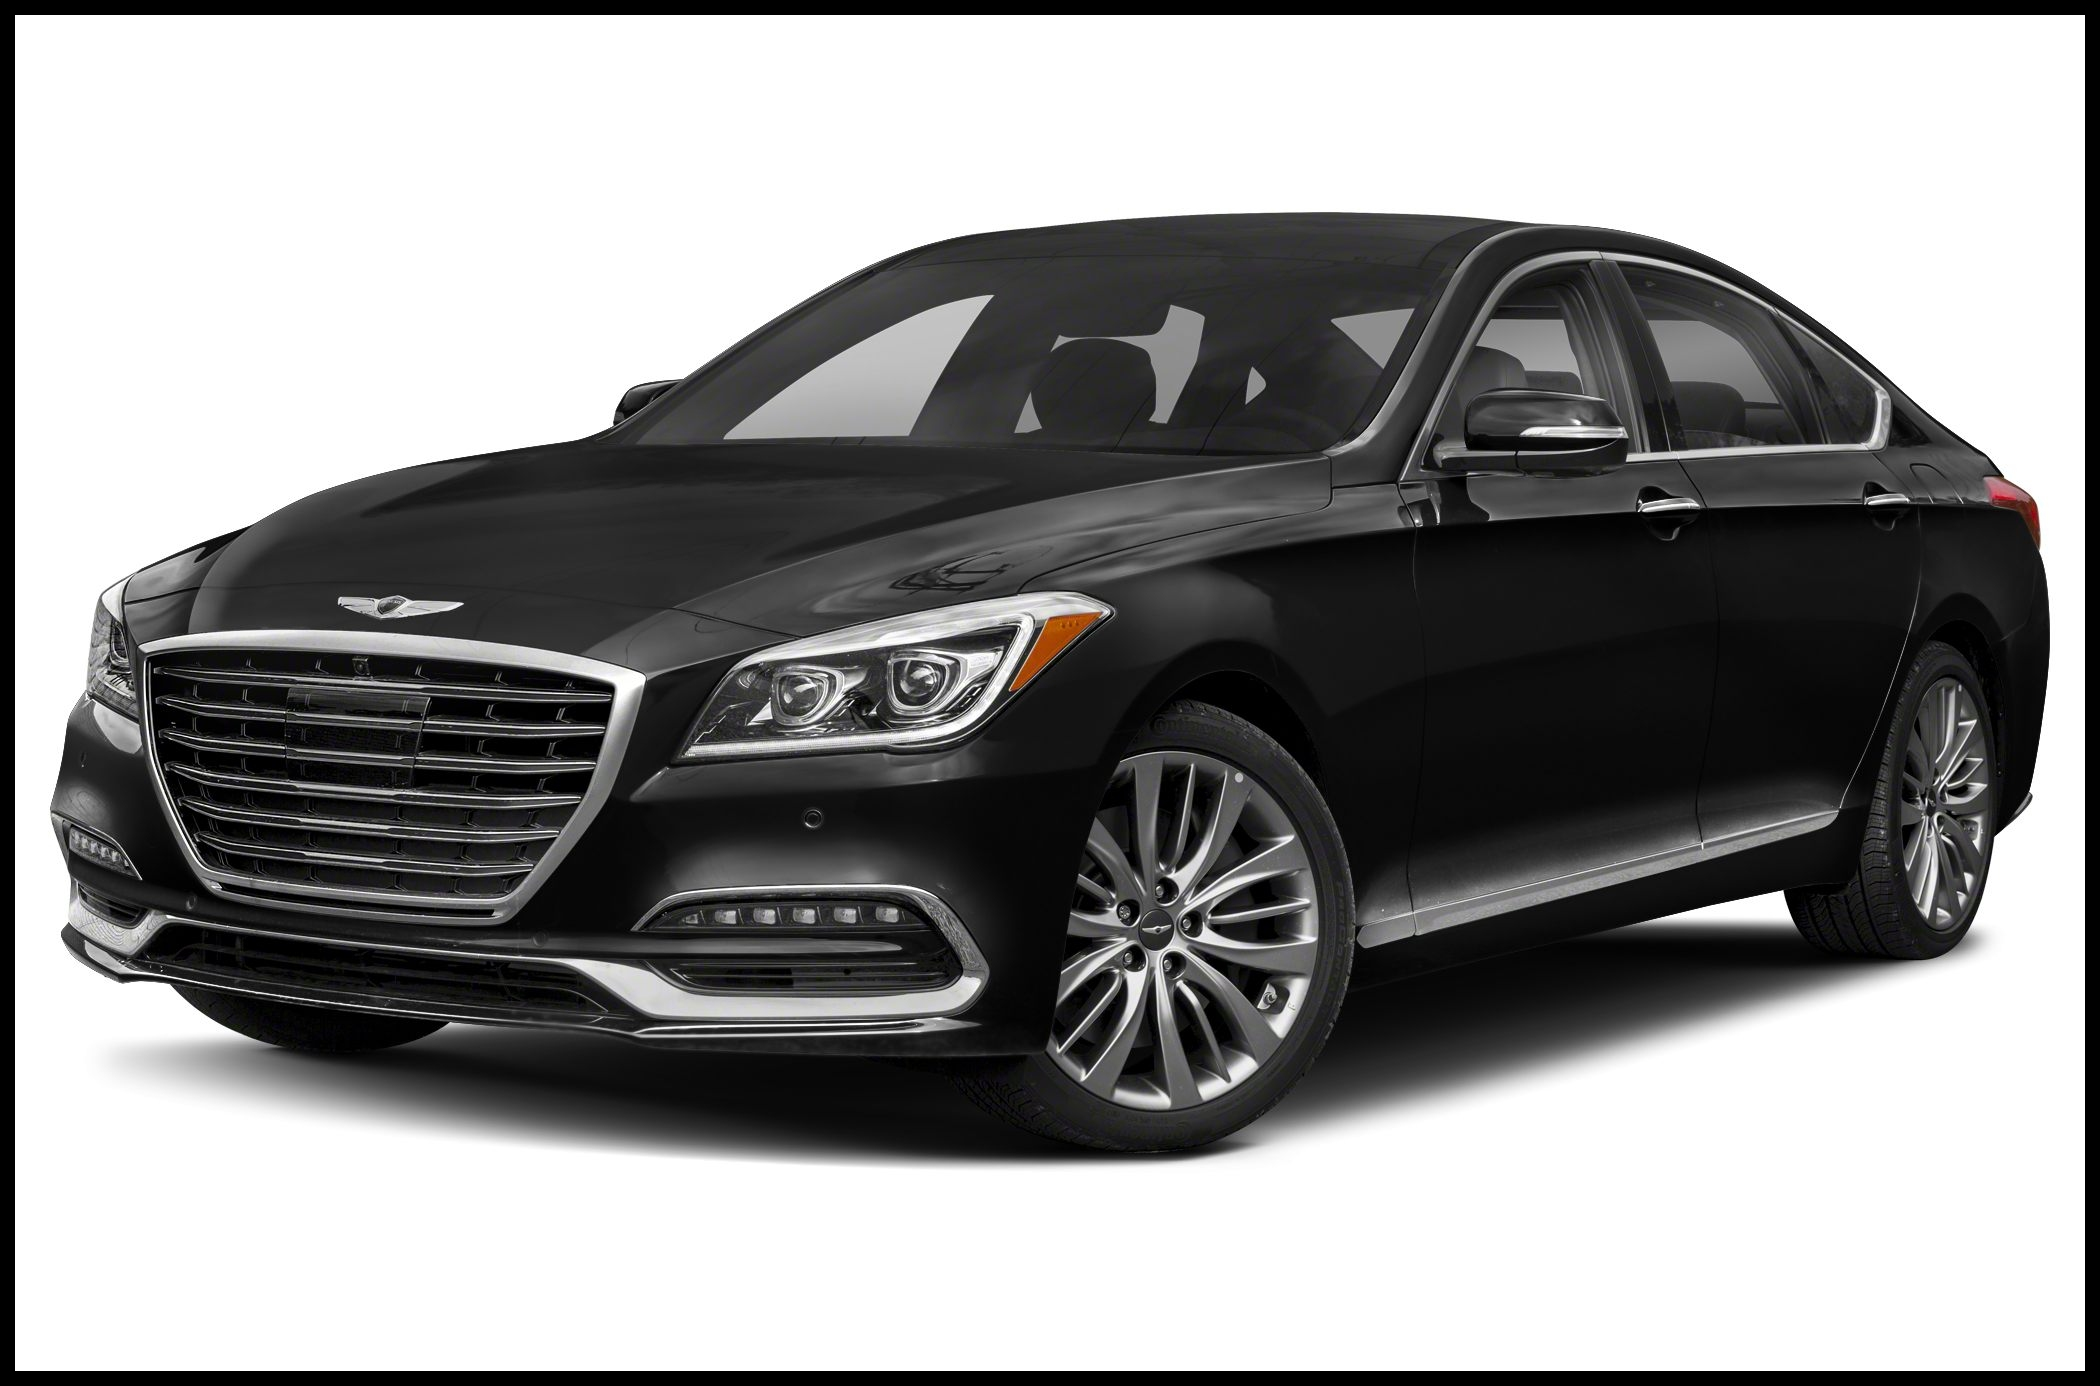 2018 Genesis G80 5 0 Ultimate 4dr All wheel Drive Sedan Pricing and Options